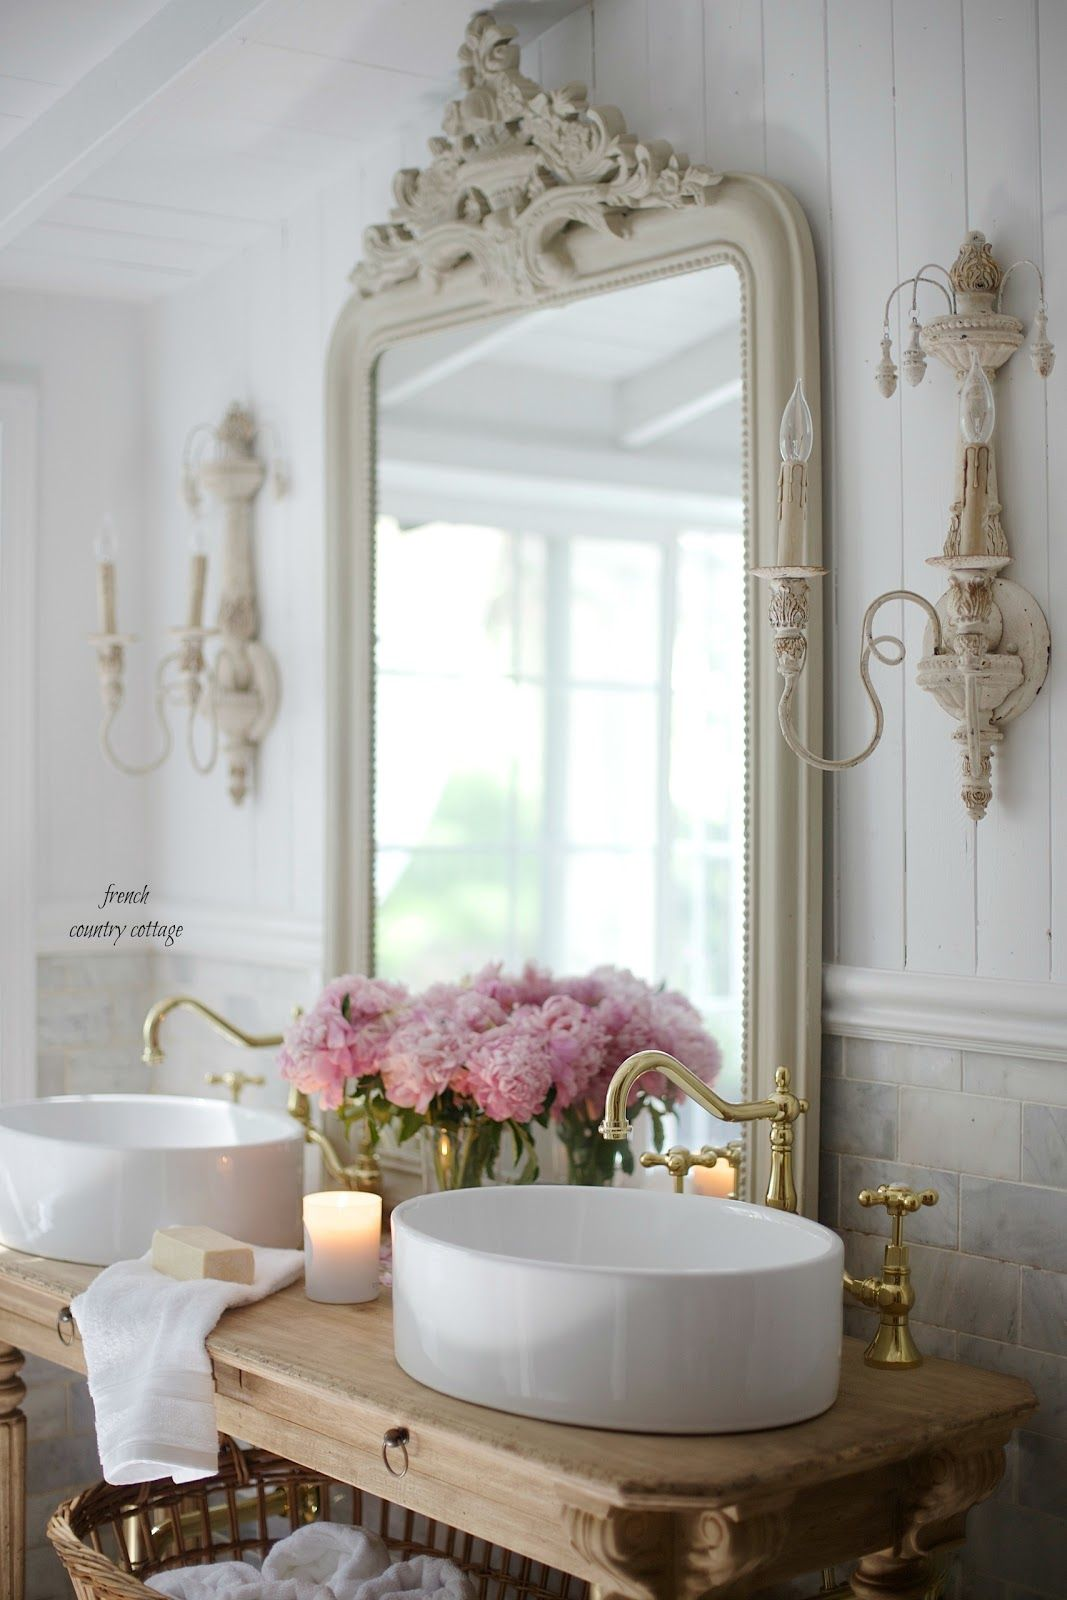 Weekend View | DESIGN | Bathroom | Pinterest | Countryside, Romantic ...